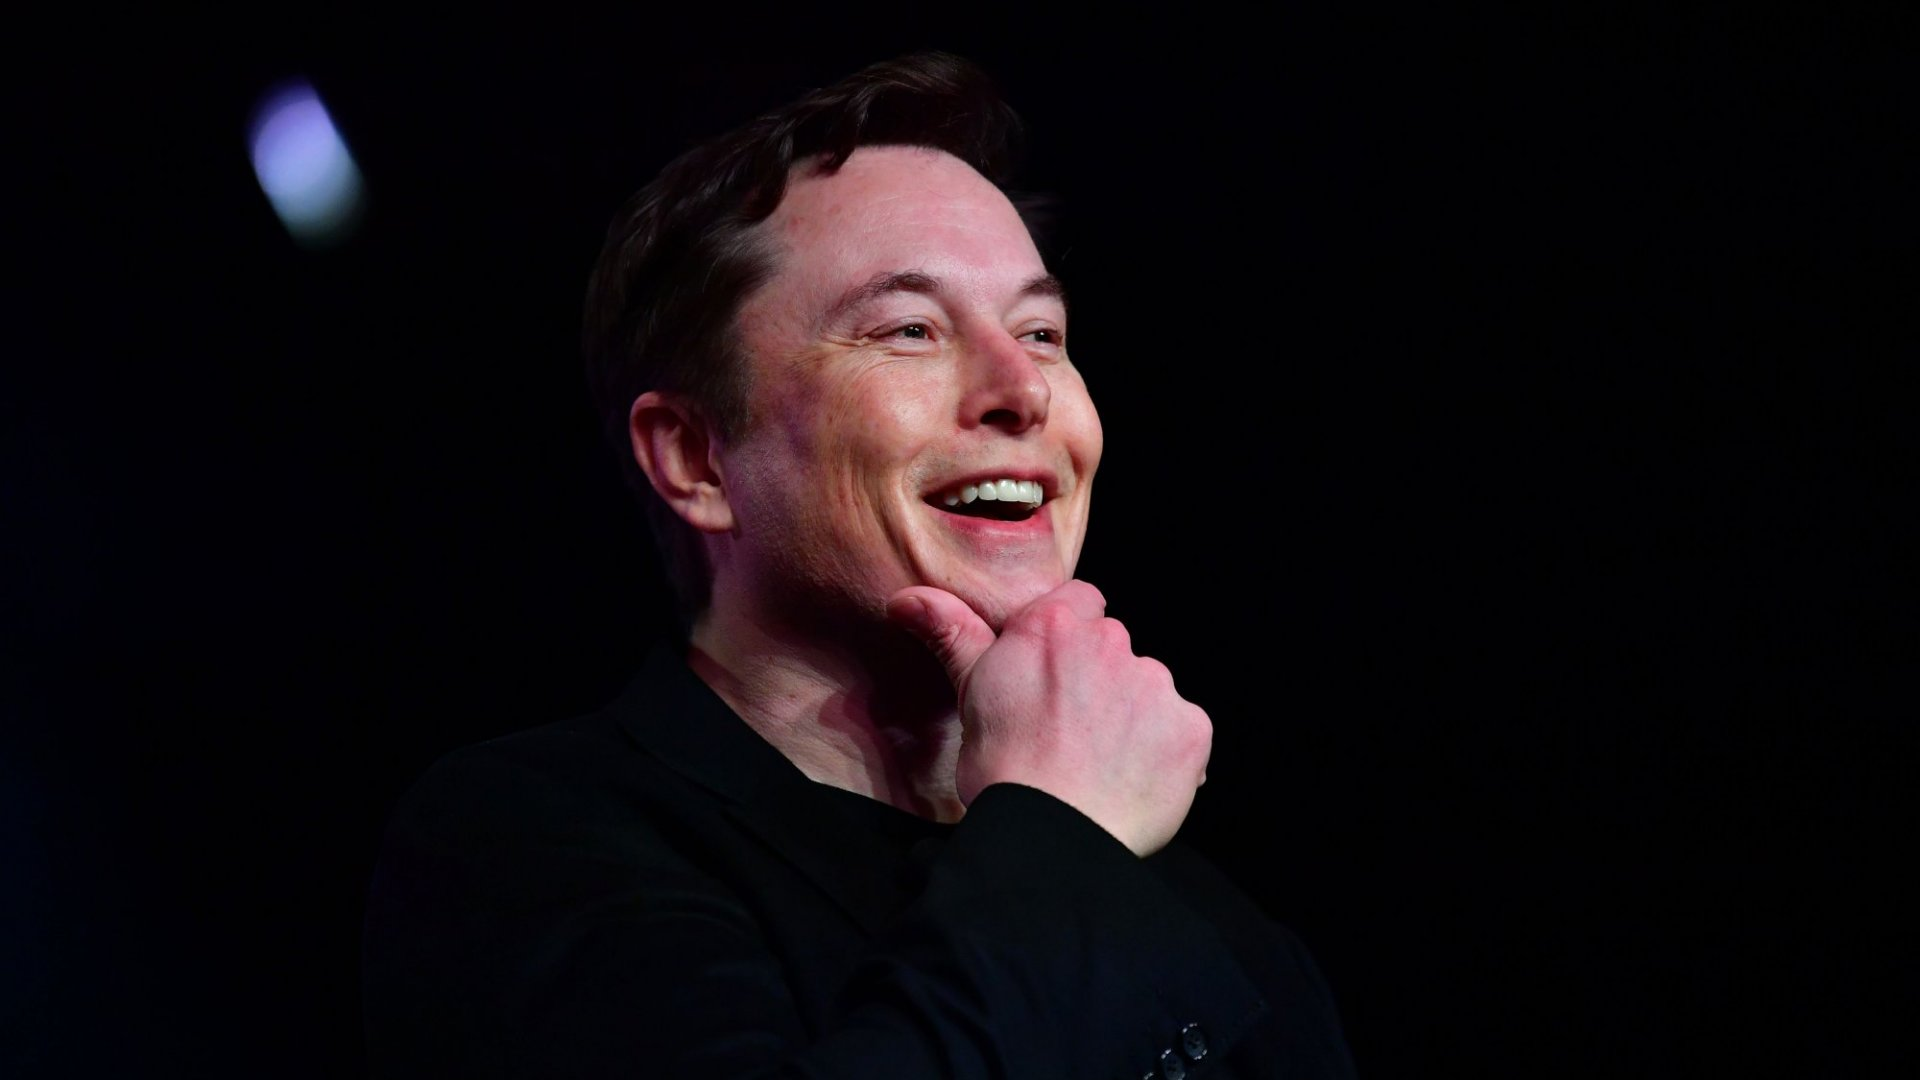 It Took Elon Musk Exactly 5 Words to Teach a Major Lesson in Emotional Intelligence